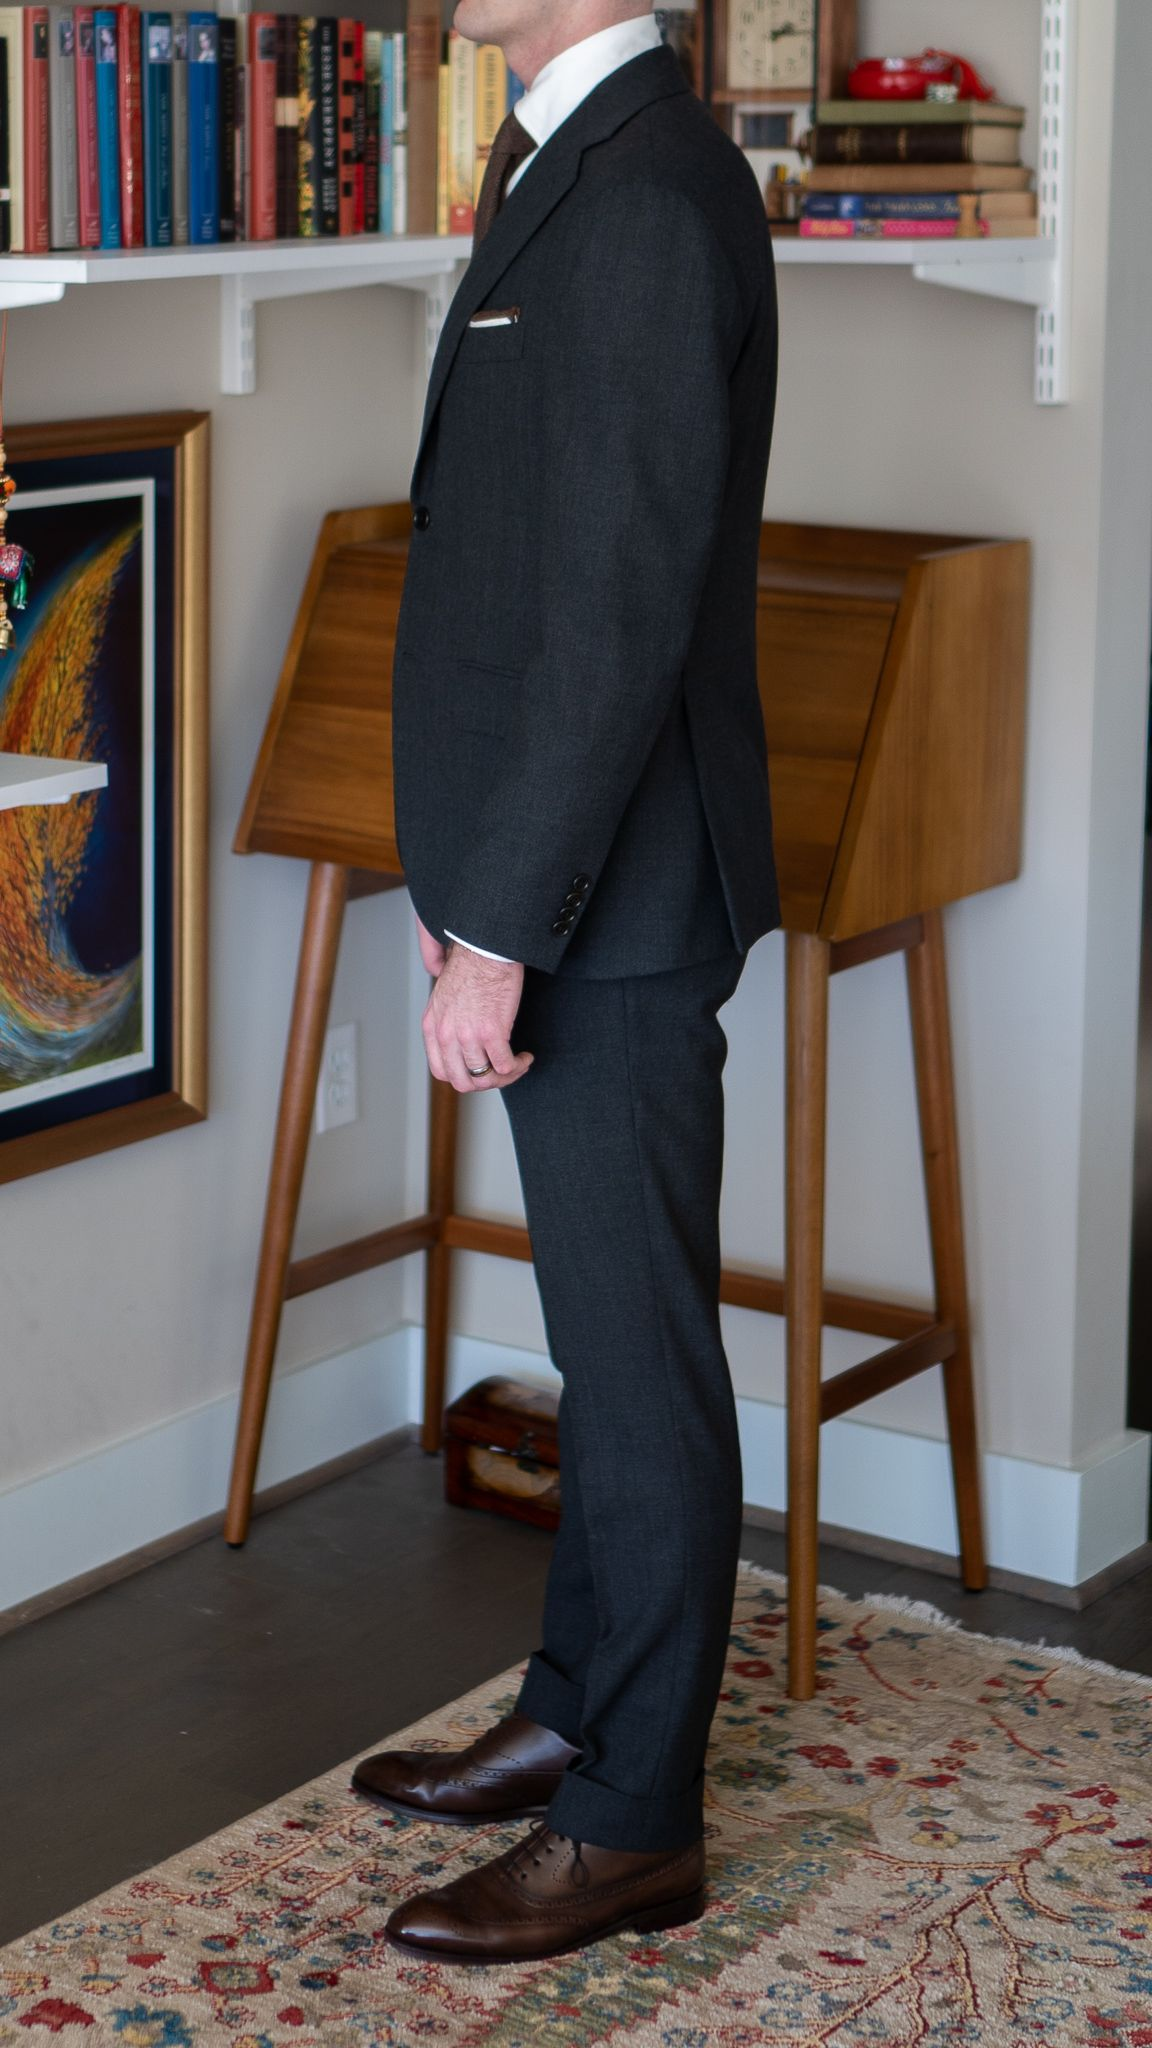 Full-length left side view of A Rake in Progress wearing the Cavour gray winter hightwist suit